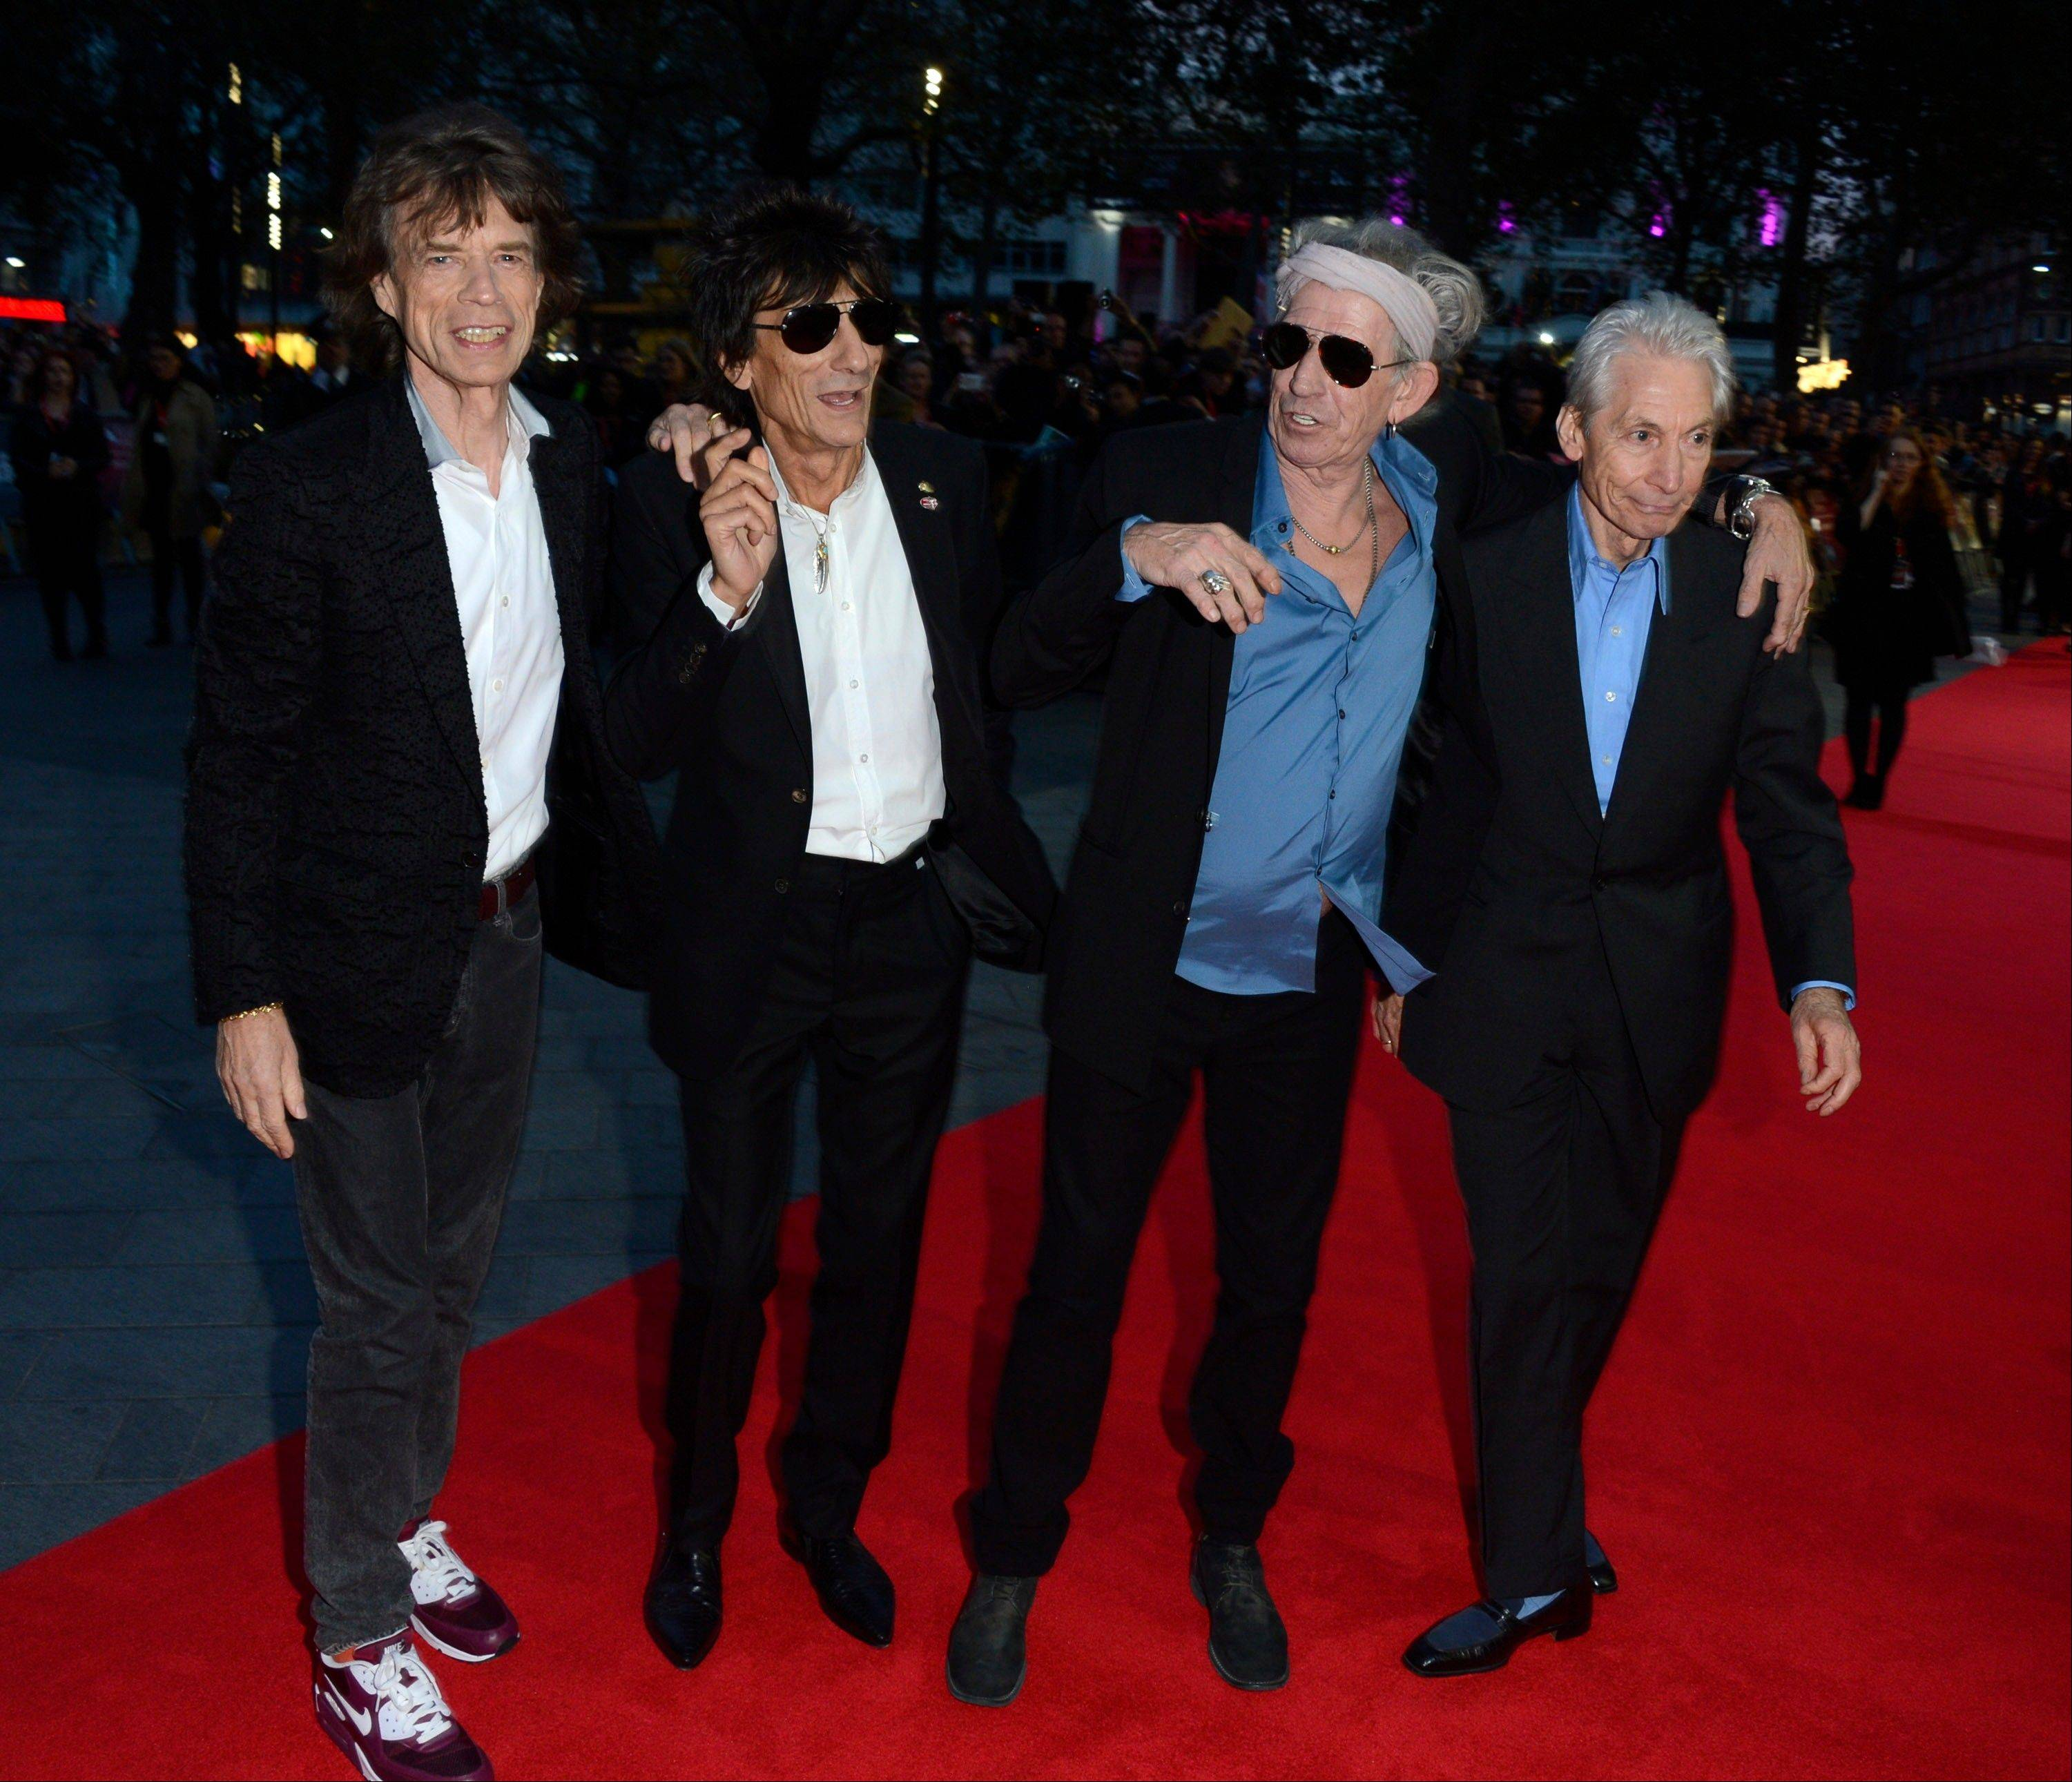 Mick Jagger, left, Ronnie Wood, Keith Richards and Charlie Watts of The Rolling Stones attend the London Film Festival American Express Gala for �Crossfire Hurricane� in London.